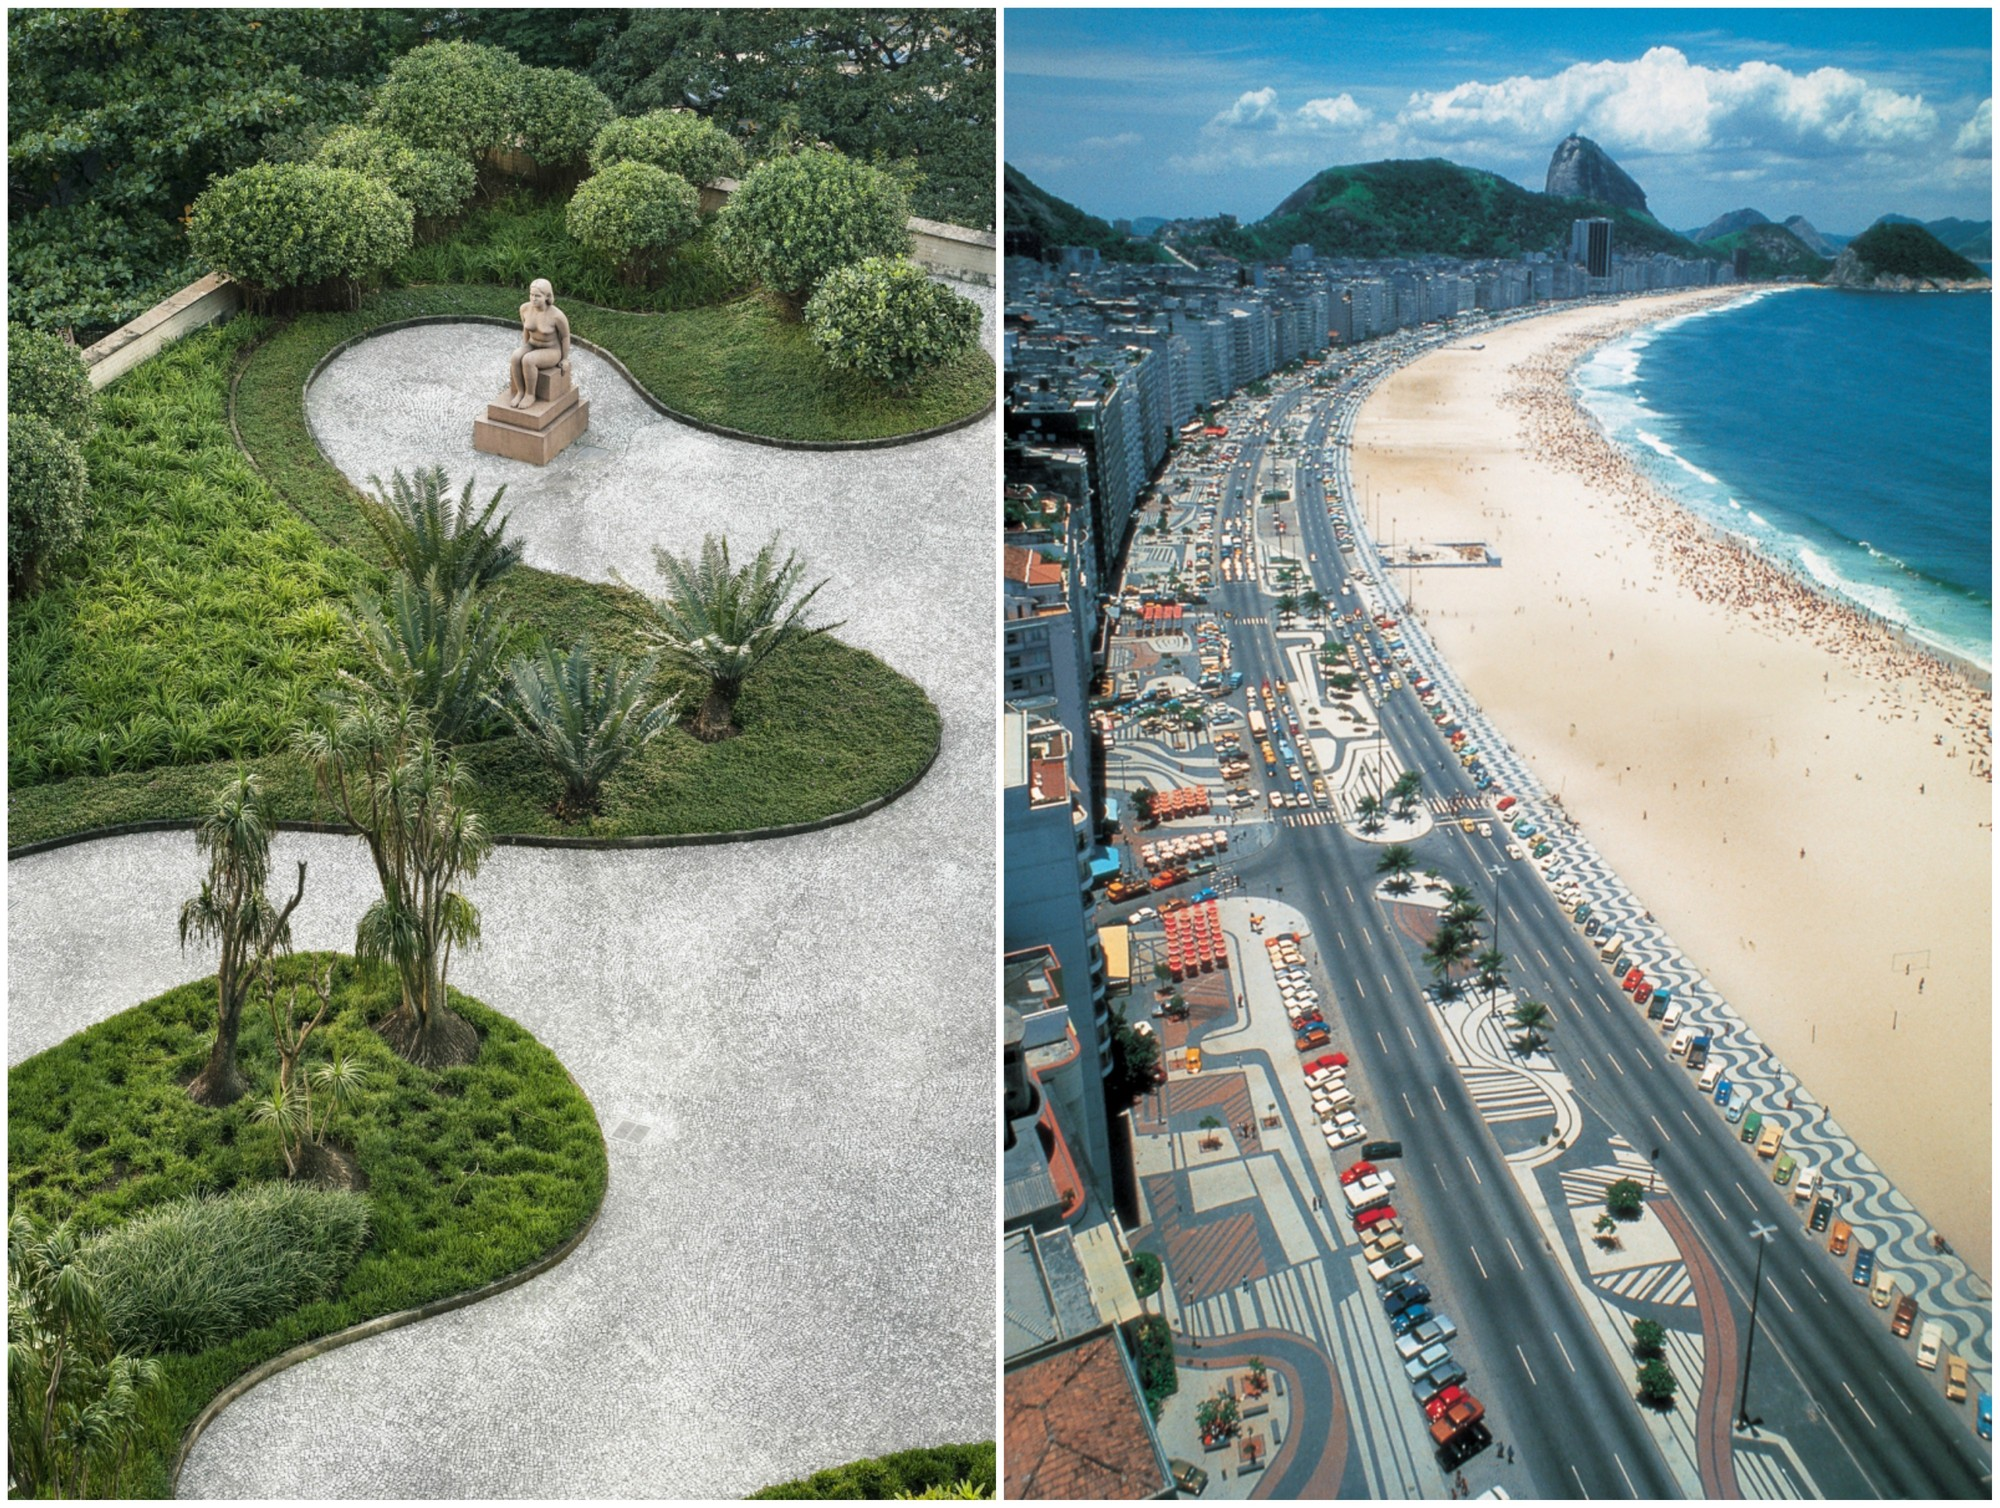 Roberto Burle Marx A Master Of Much More Than Just Modernist Landscape